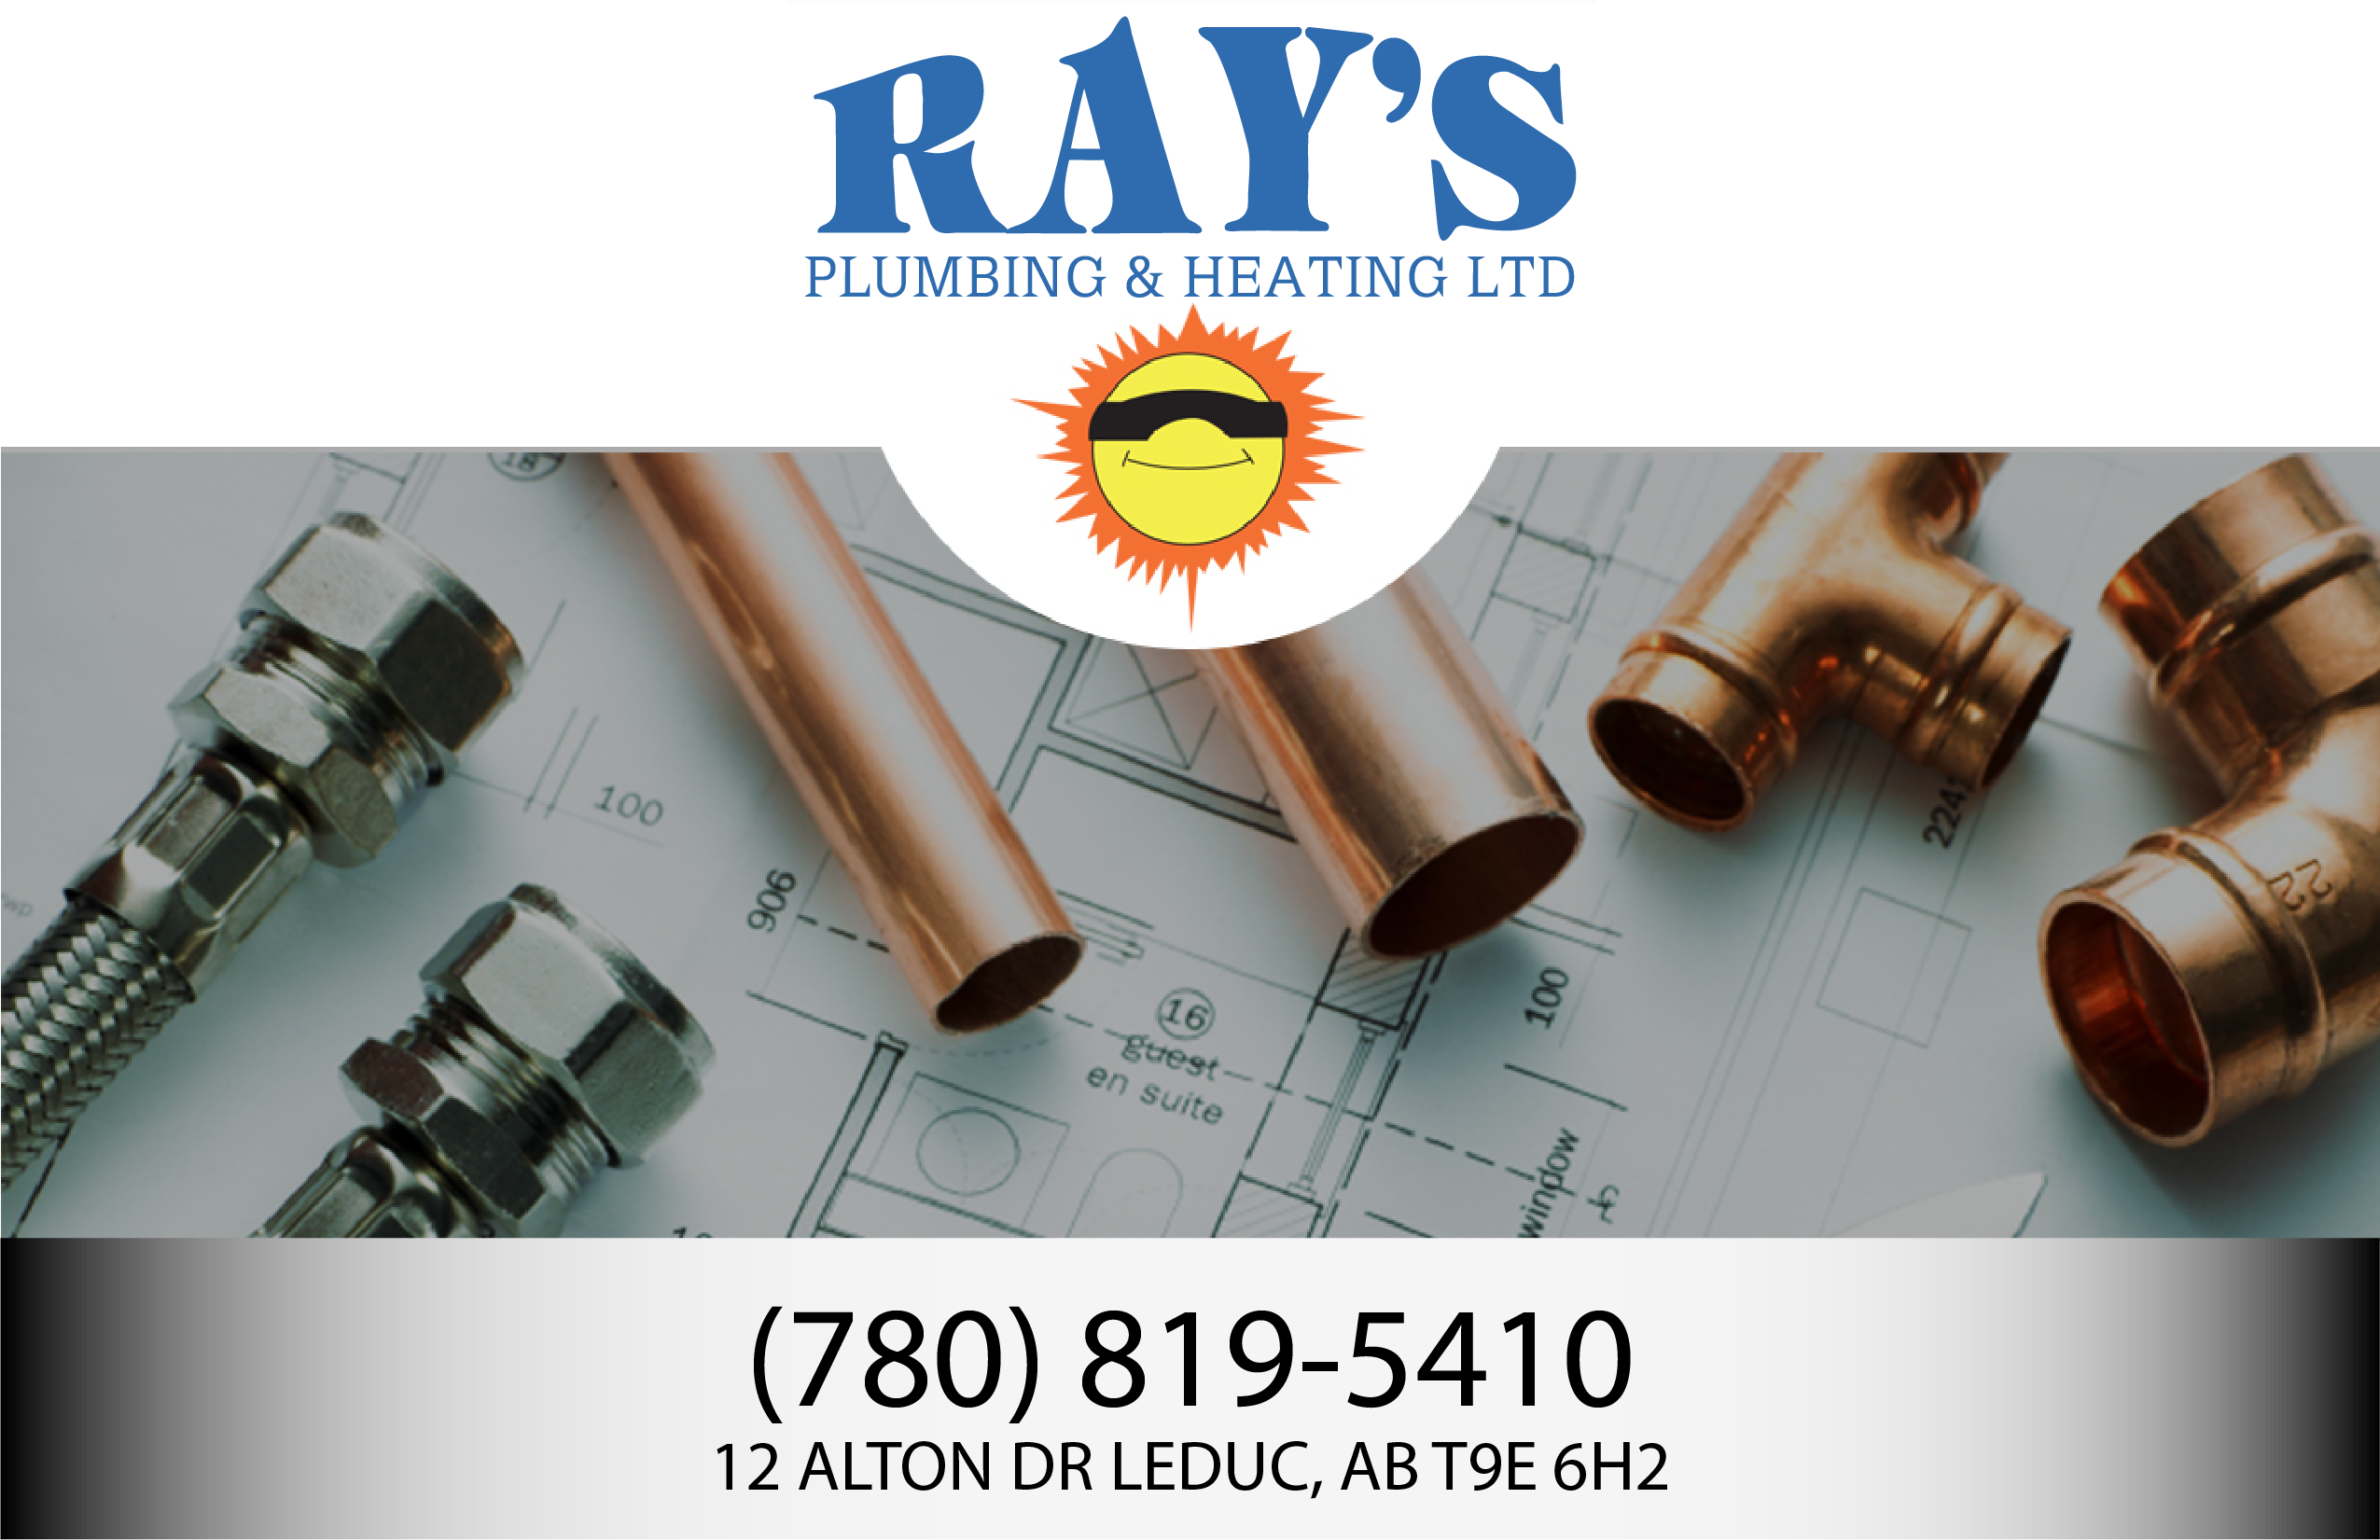 Ray's Plumbing and Heating